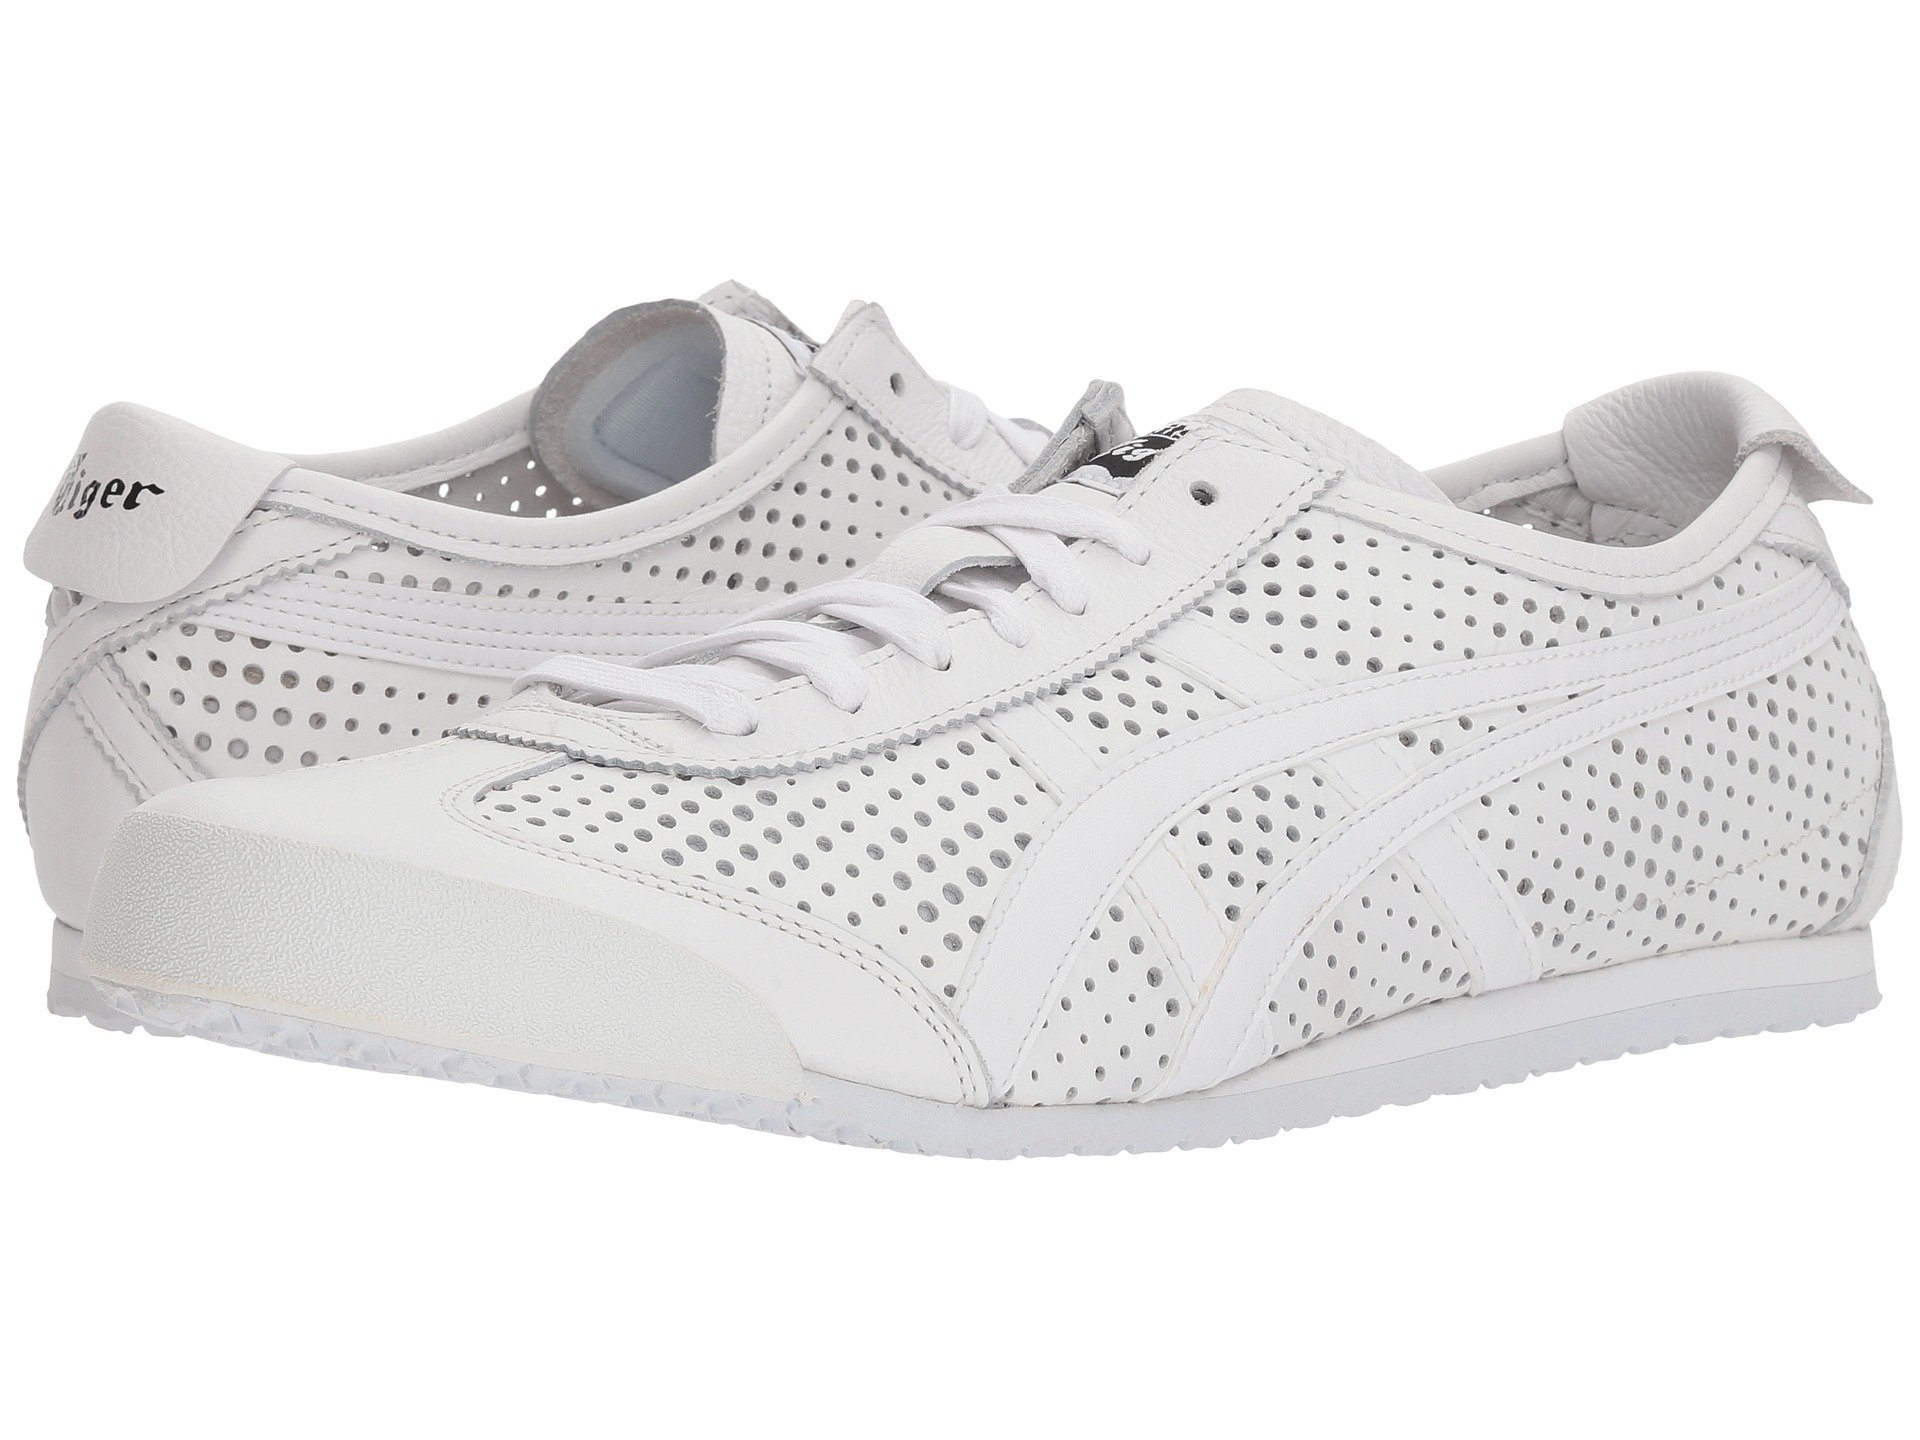 best service a131a 76cdf Кроссовки Onitsuka Tiger by Asics Mexico 66® White, 44.5 (282 мм) (10103336)